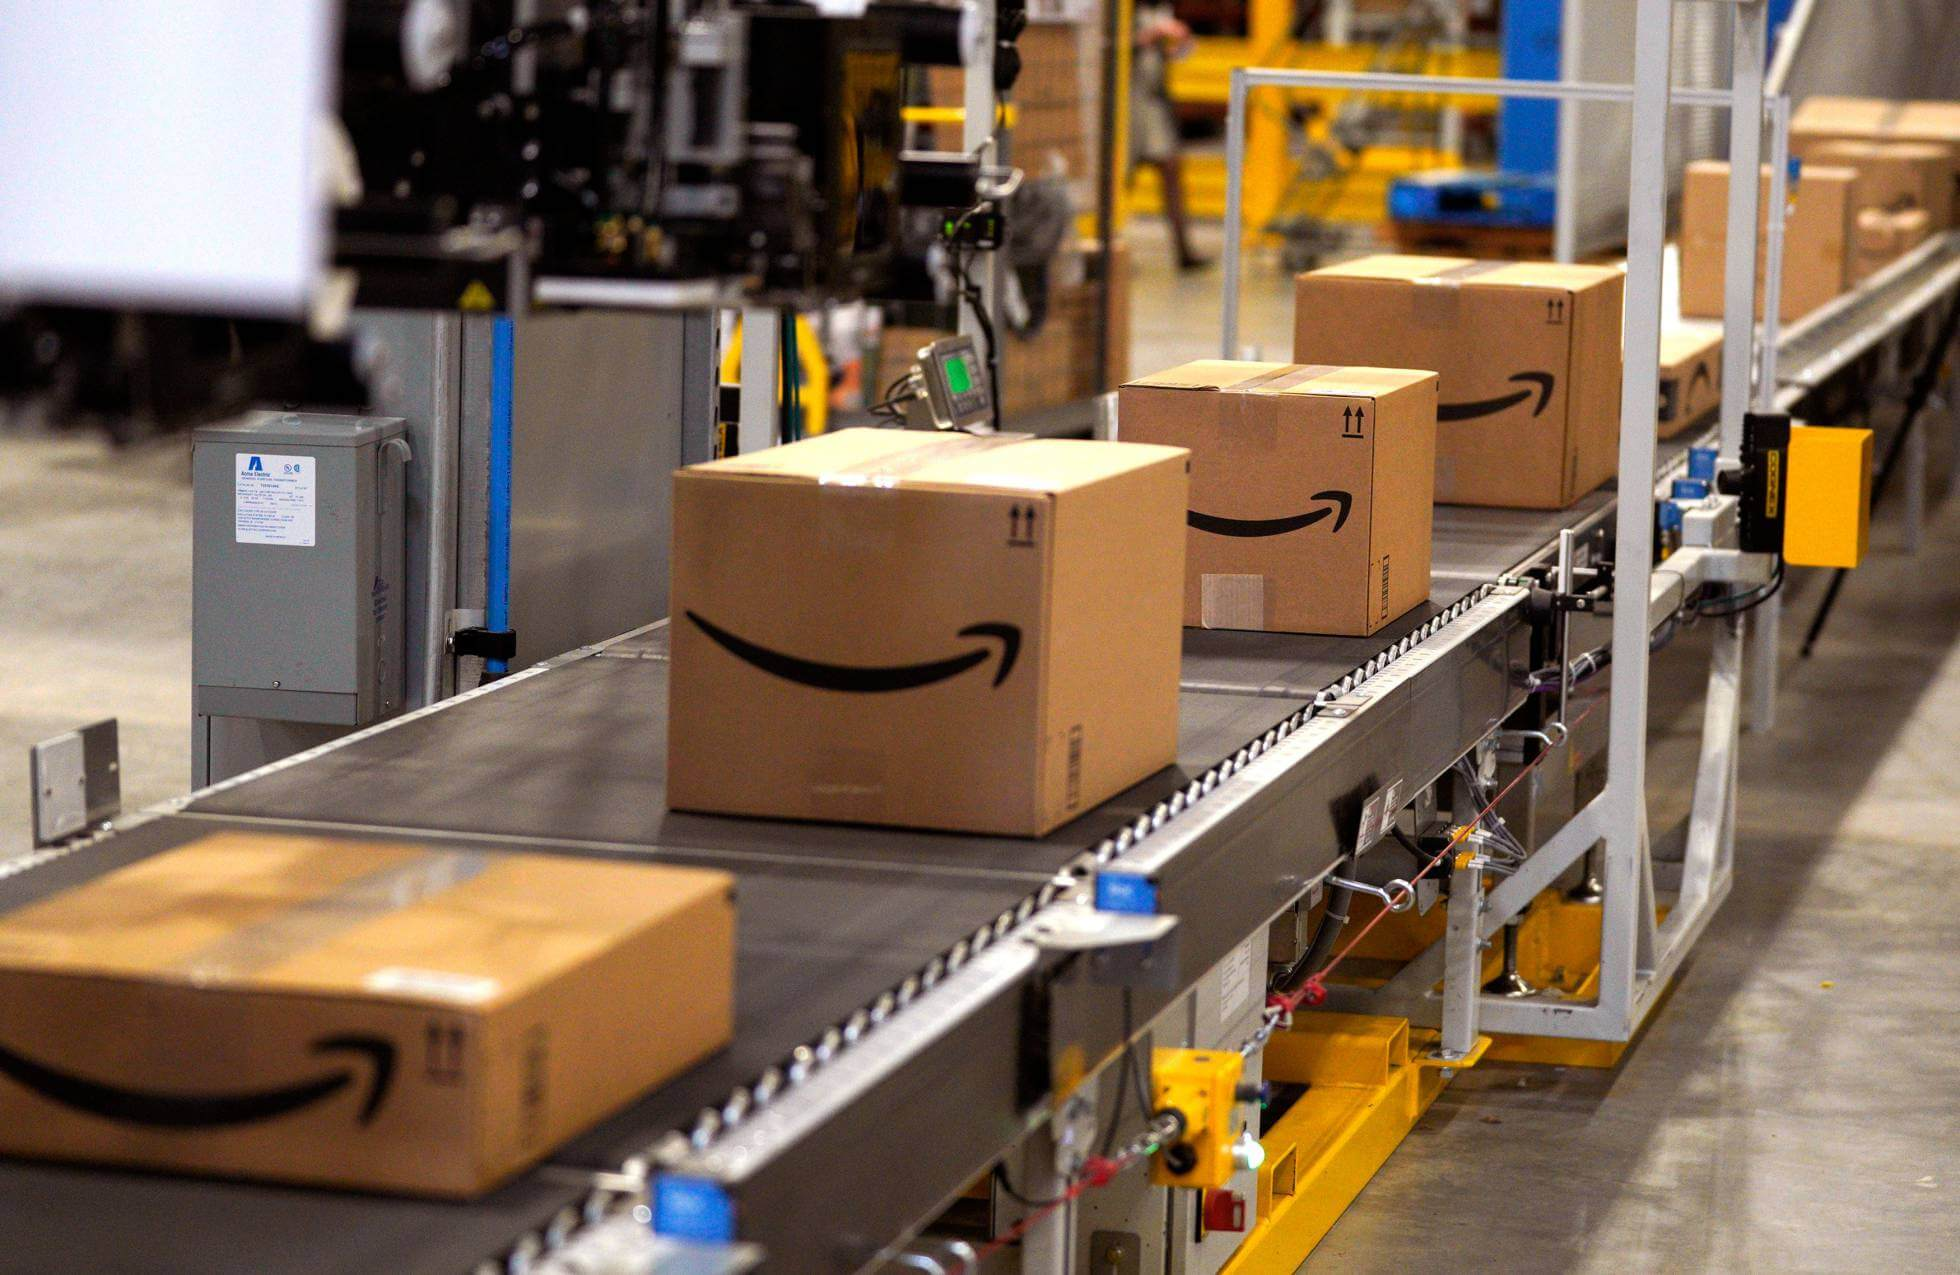 Amazon packages on a conveyer belt in a warehouse